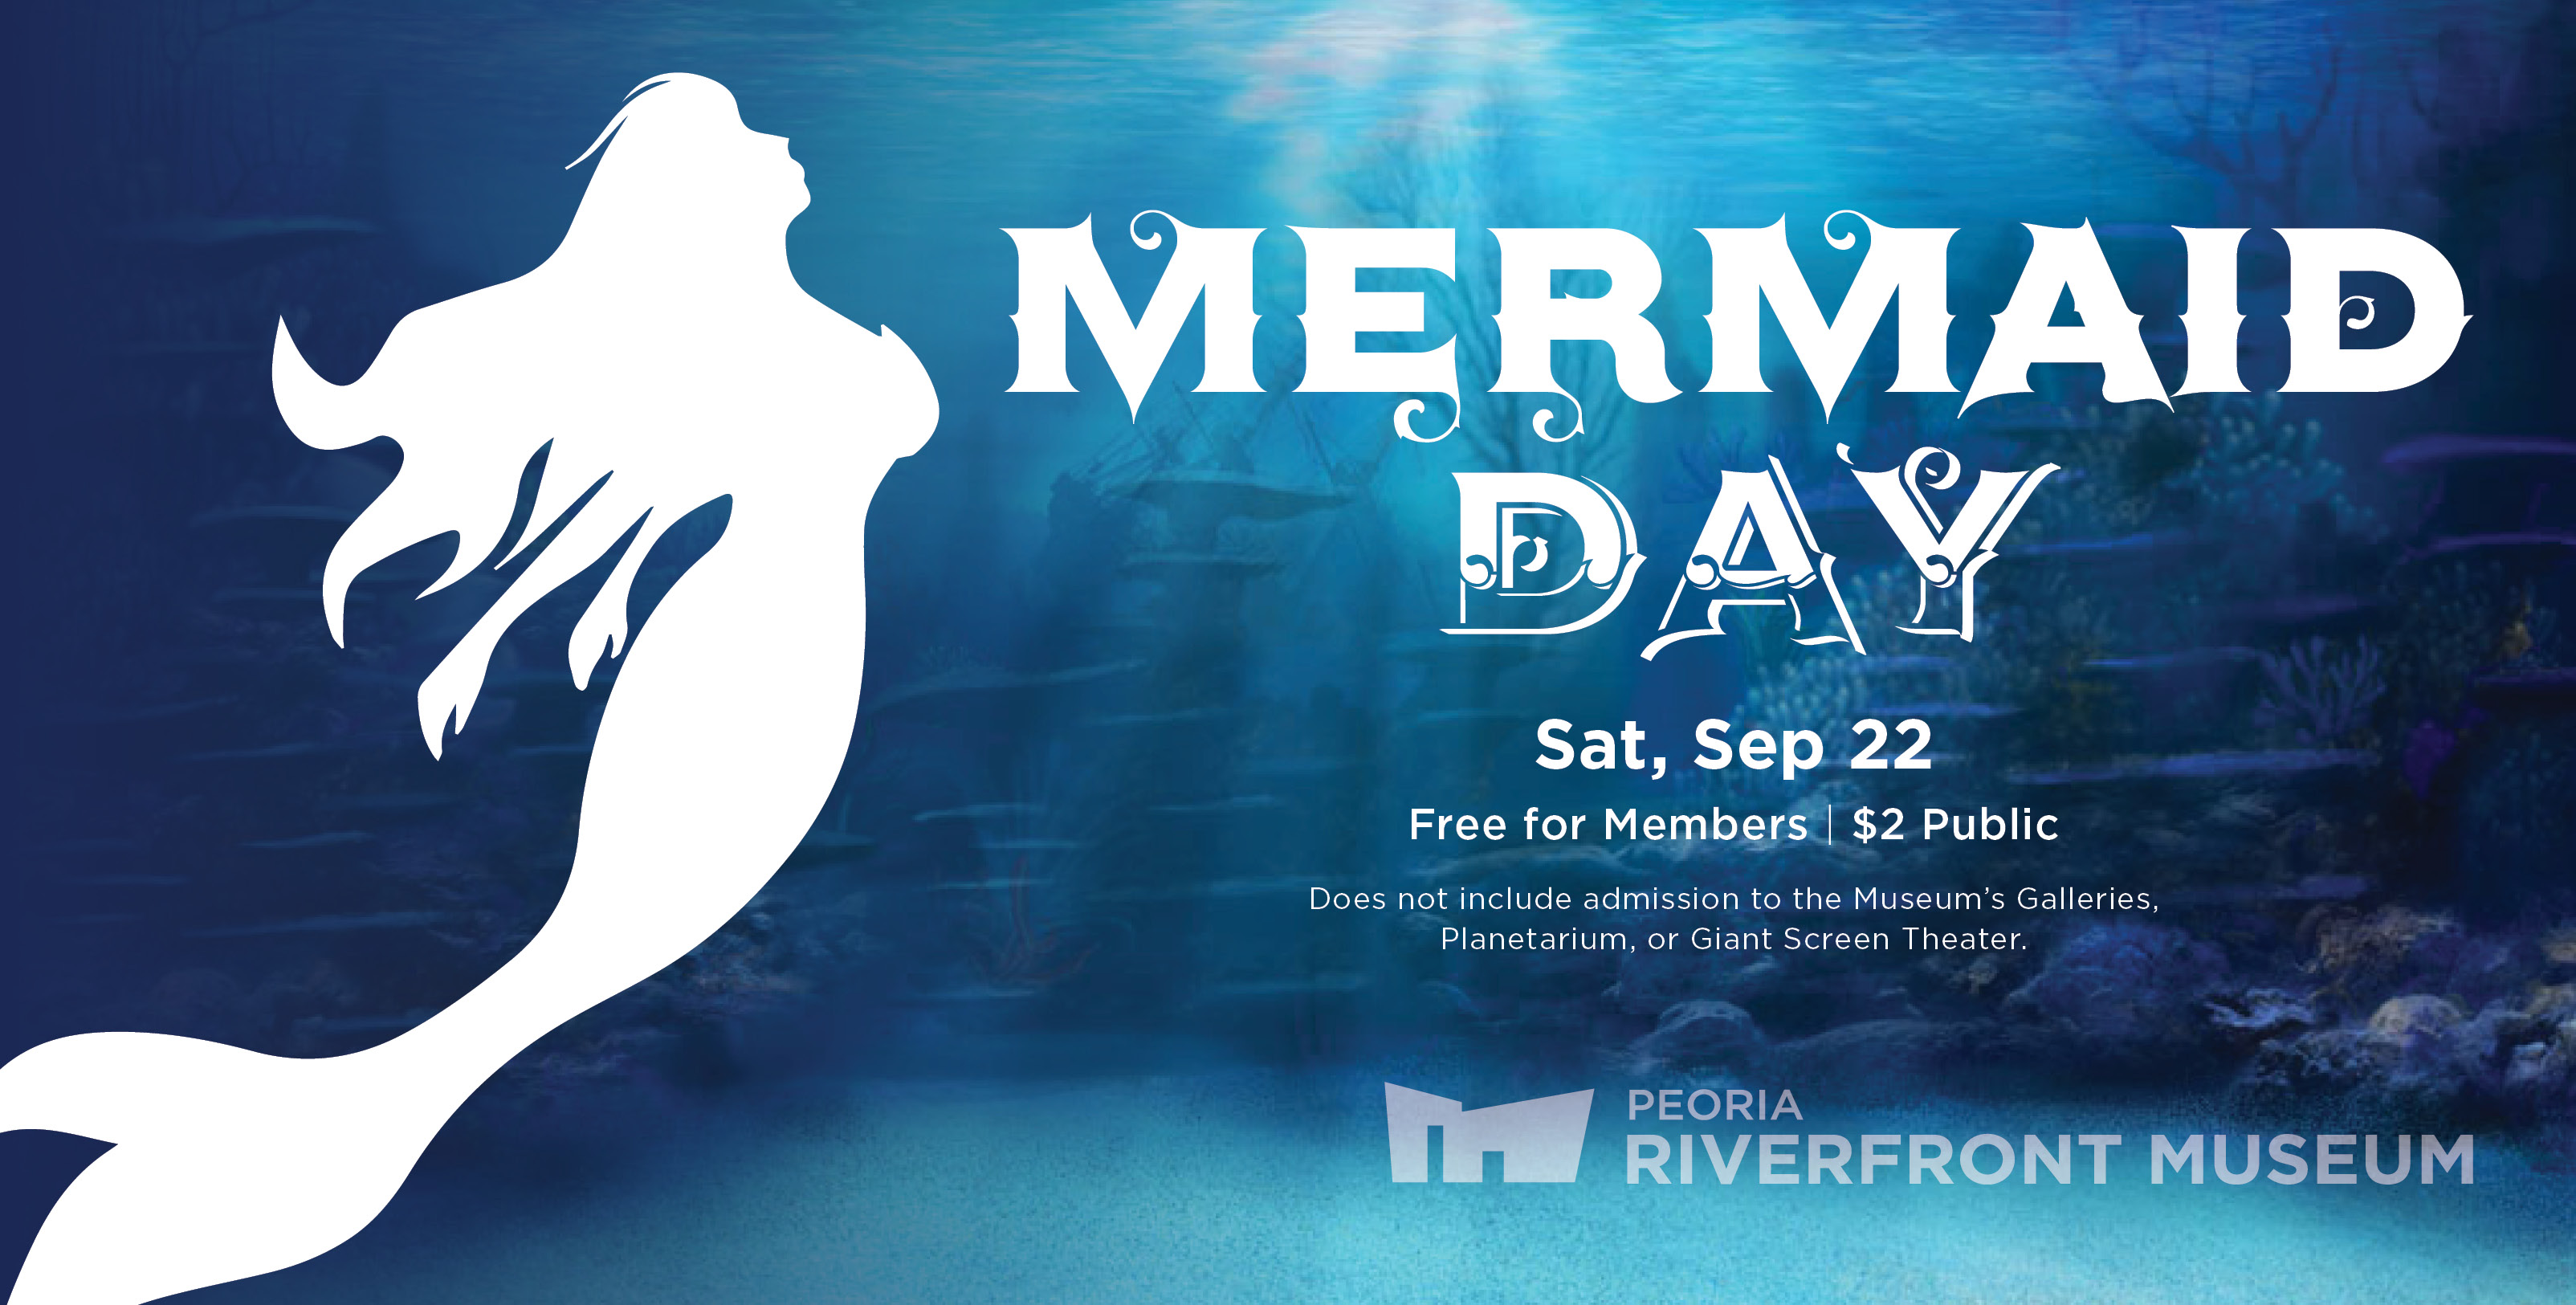 Programs Mermaid Day Wb Rev